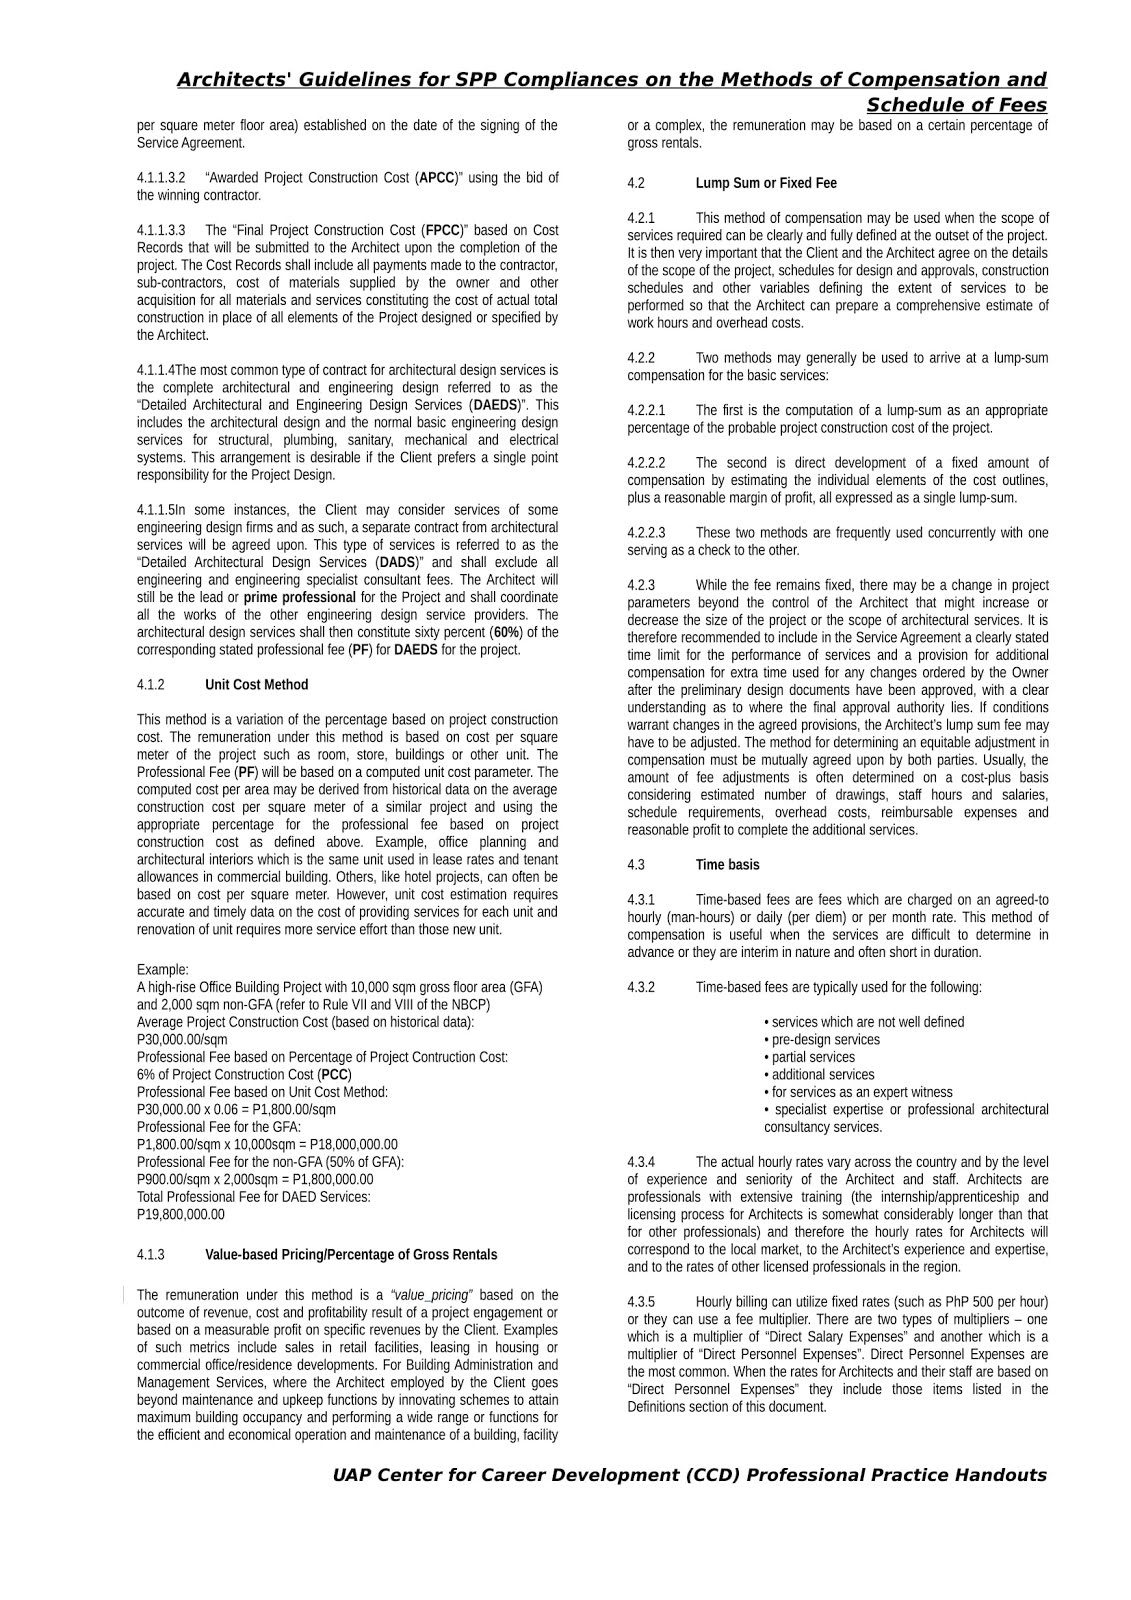 Architects' Guidelines Methods Of Compensation And